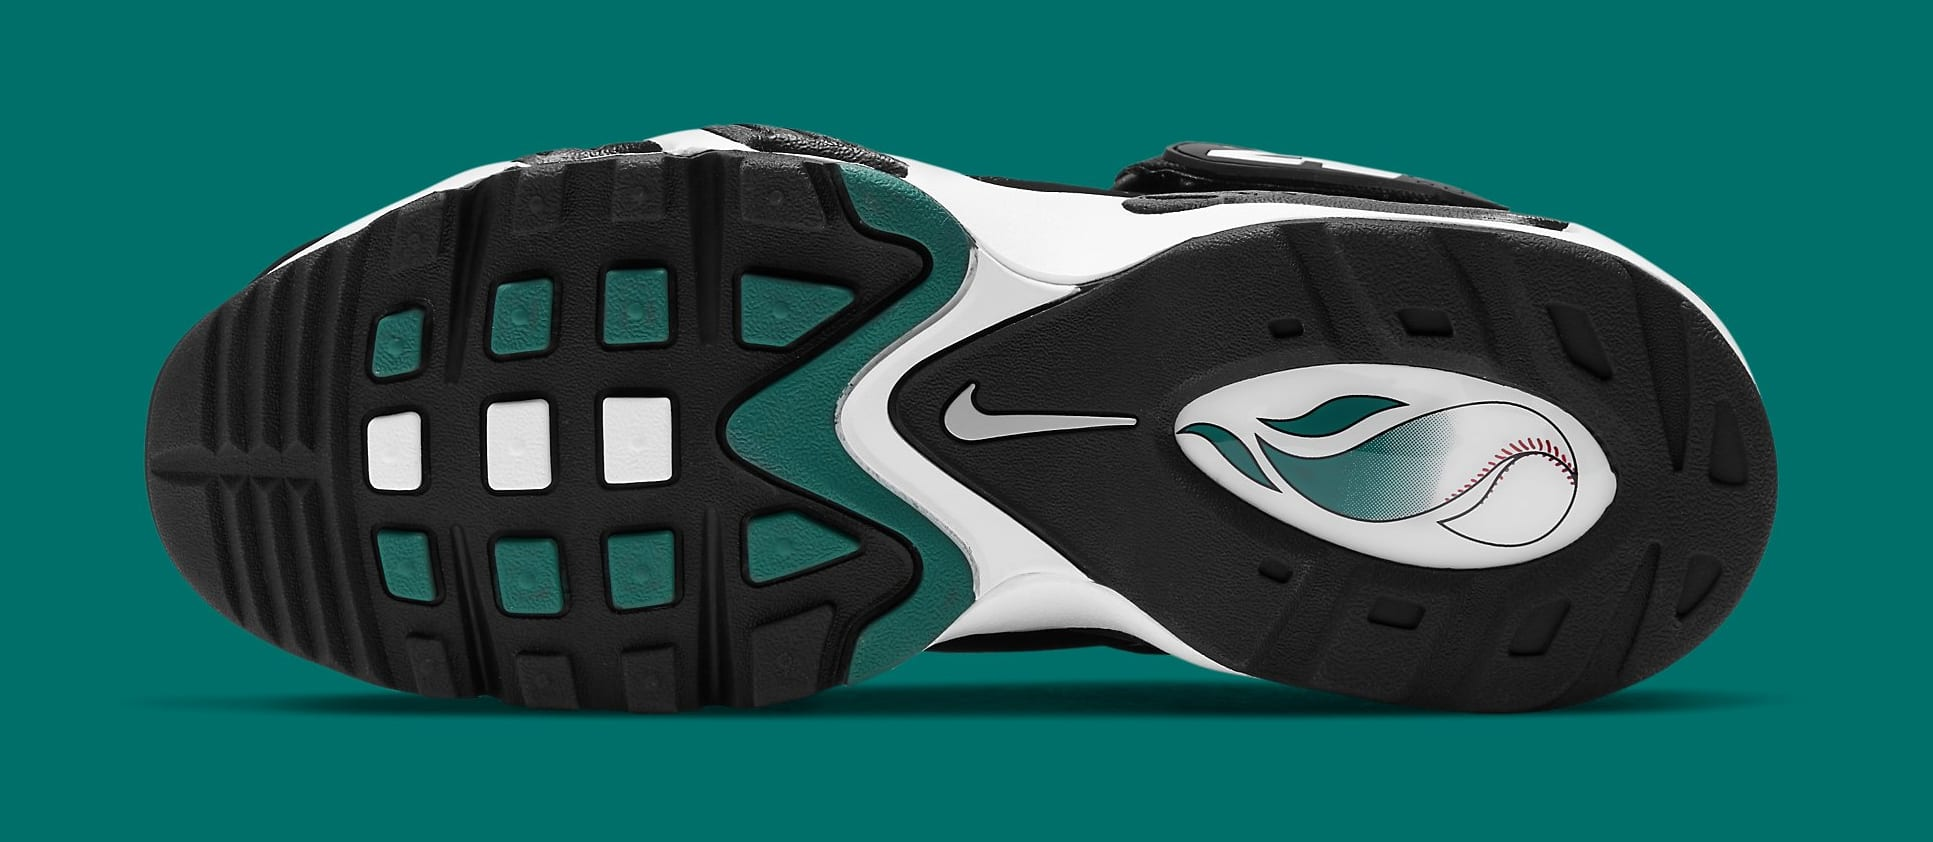 Nike Air Griffey Max 1 'Freshwater' 2021 DD8558-100 Outsole